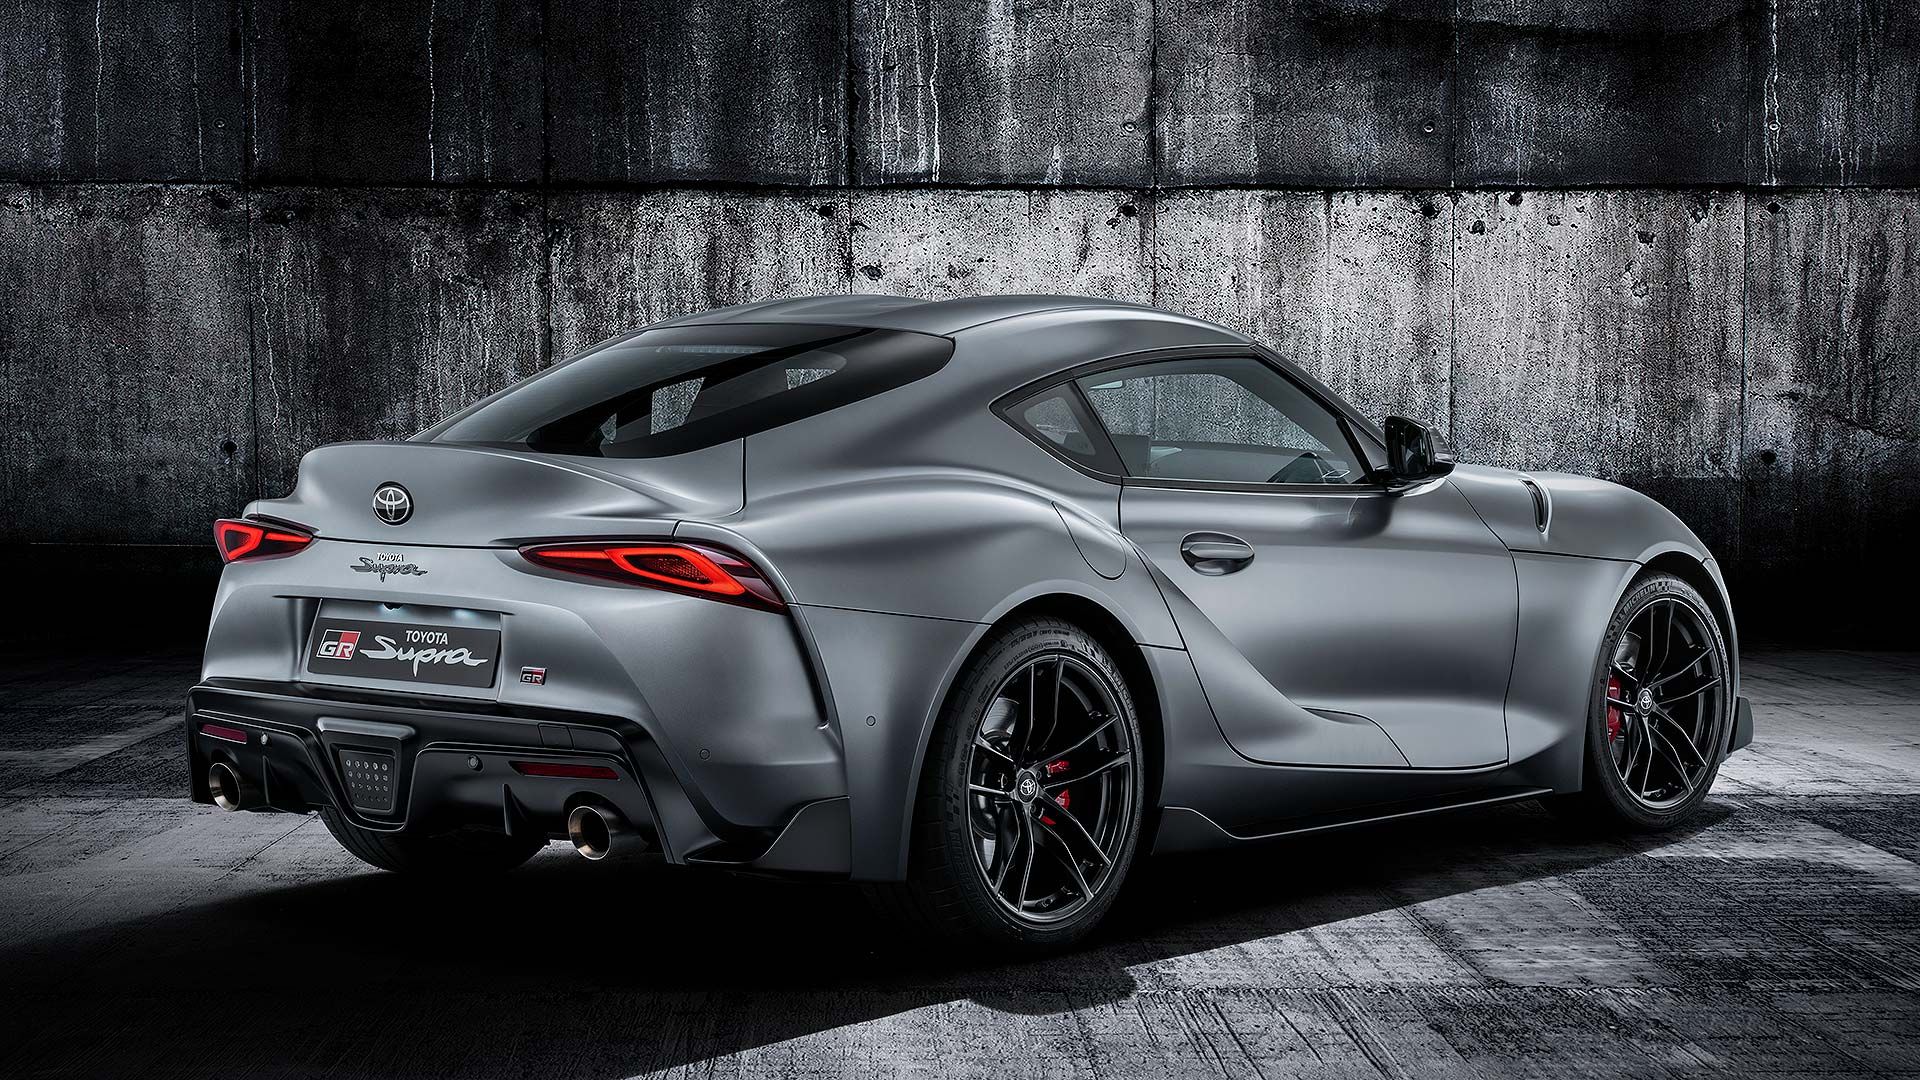 new toyota gr supra everything you need to know motoring research. Black Bedroom Furniture Sets. Home Design Ideas